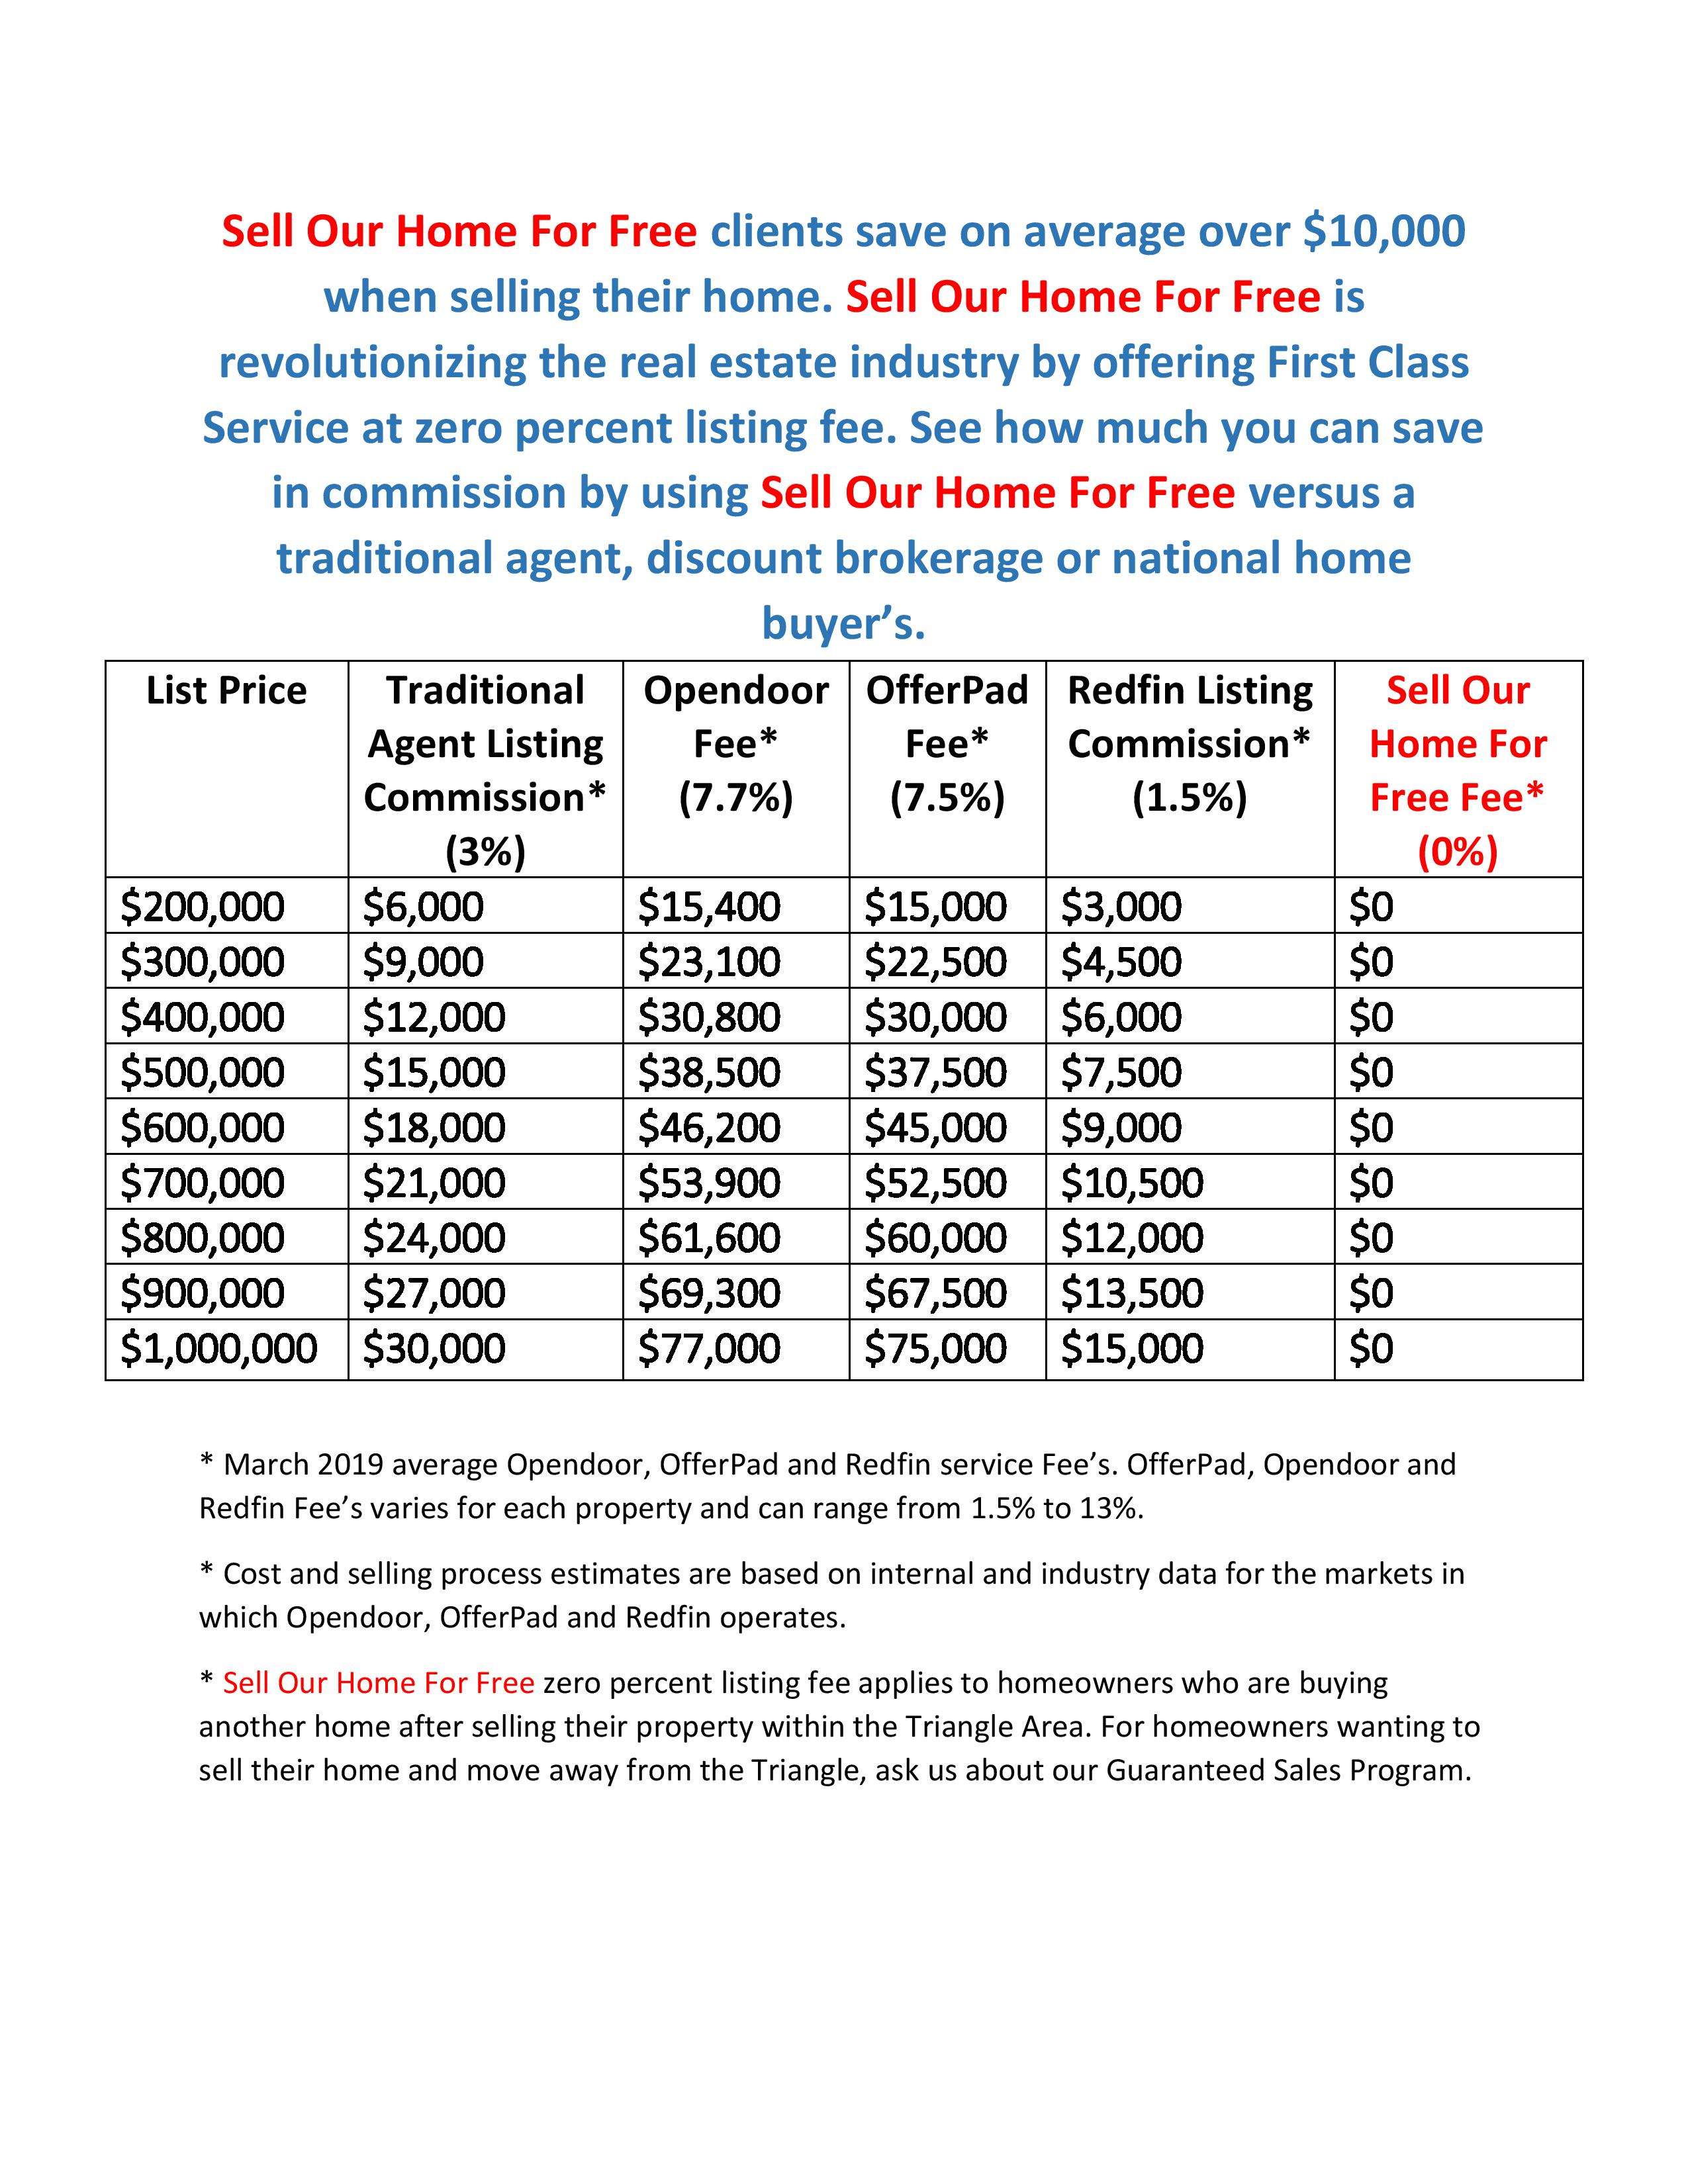 Sell Free Comparision Fees-page-001.jpg